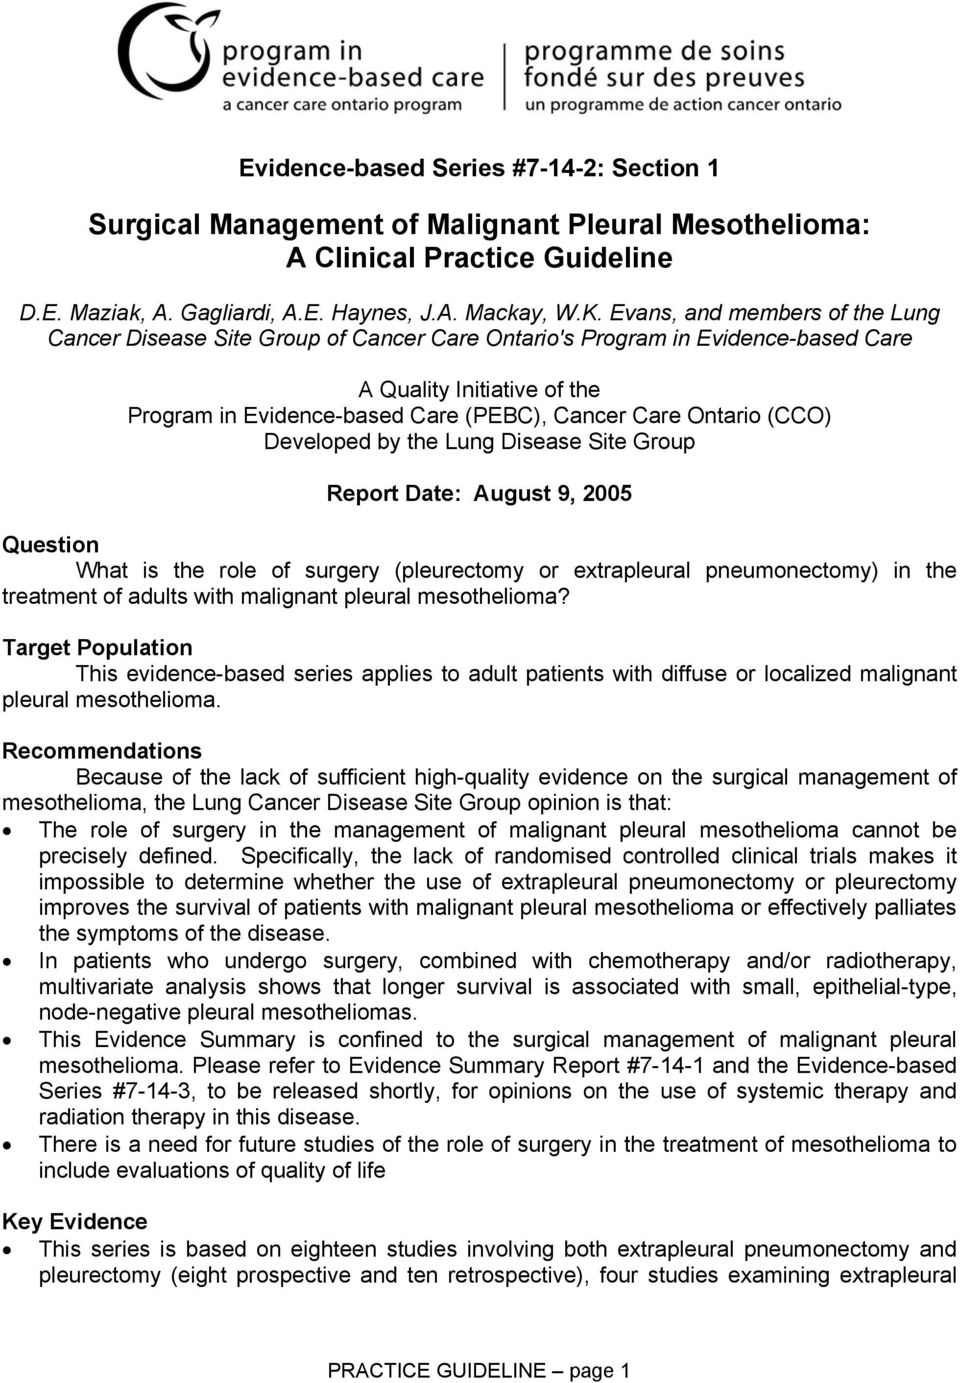 (CCO) Developed by the Lung Disease Site Group Report Date: August 9, 2005 Question What is the role of surgery (pleurectomy or extrapleural pneumonectomy) in the treatment of adults with malignant